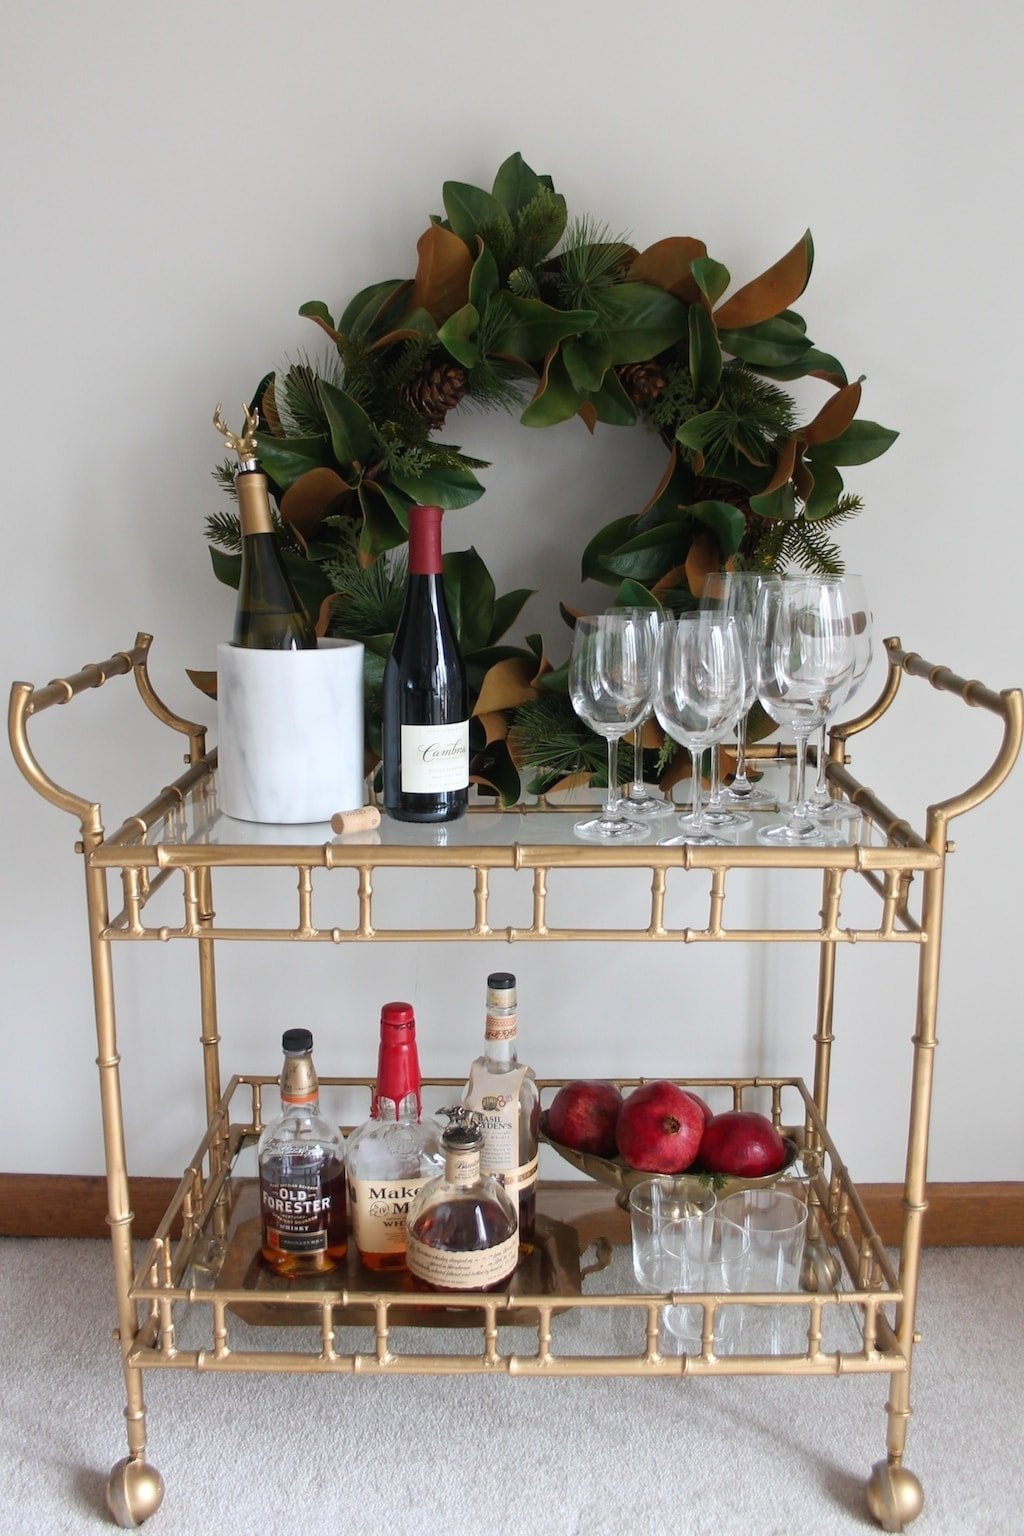 Tips for styling a bar cart for Christmas